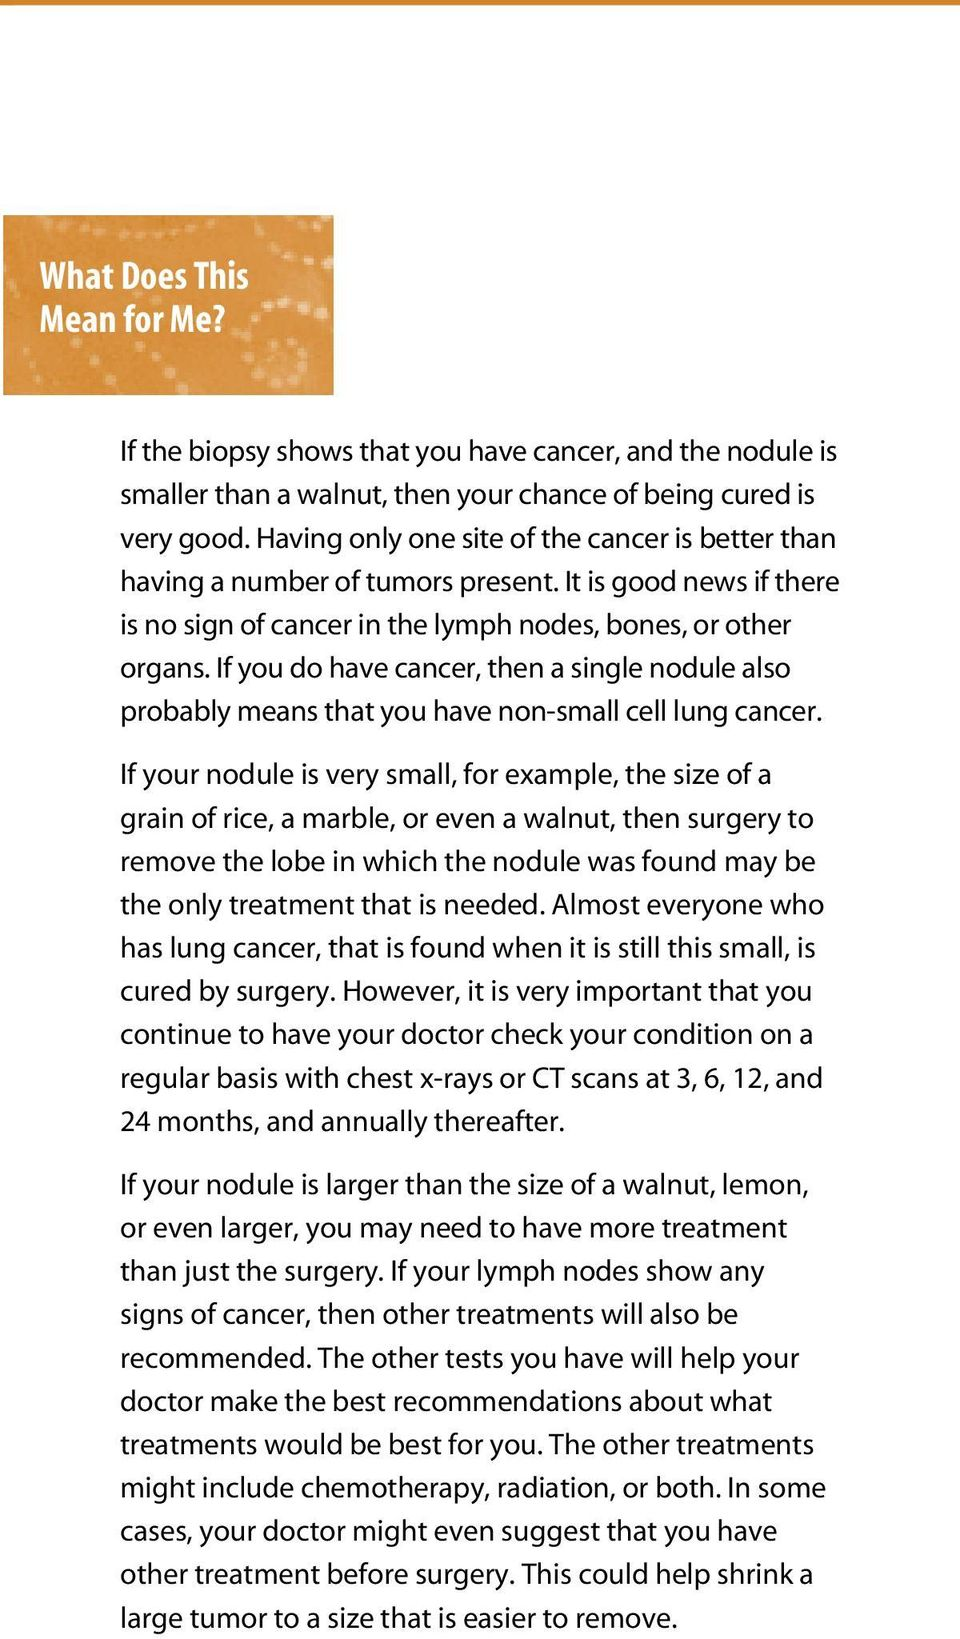 If you do have cancer, then a single nodule also probably means that you have non-small cell lung cancer.